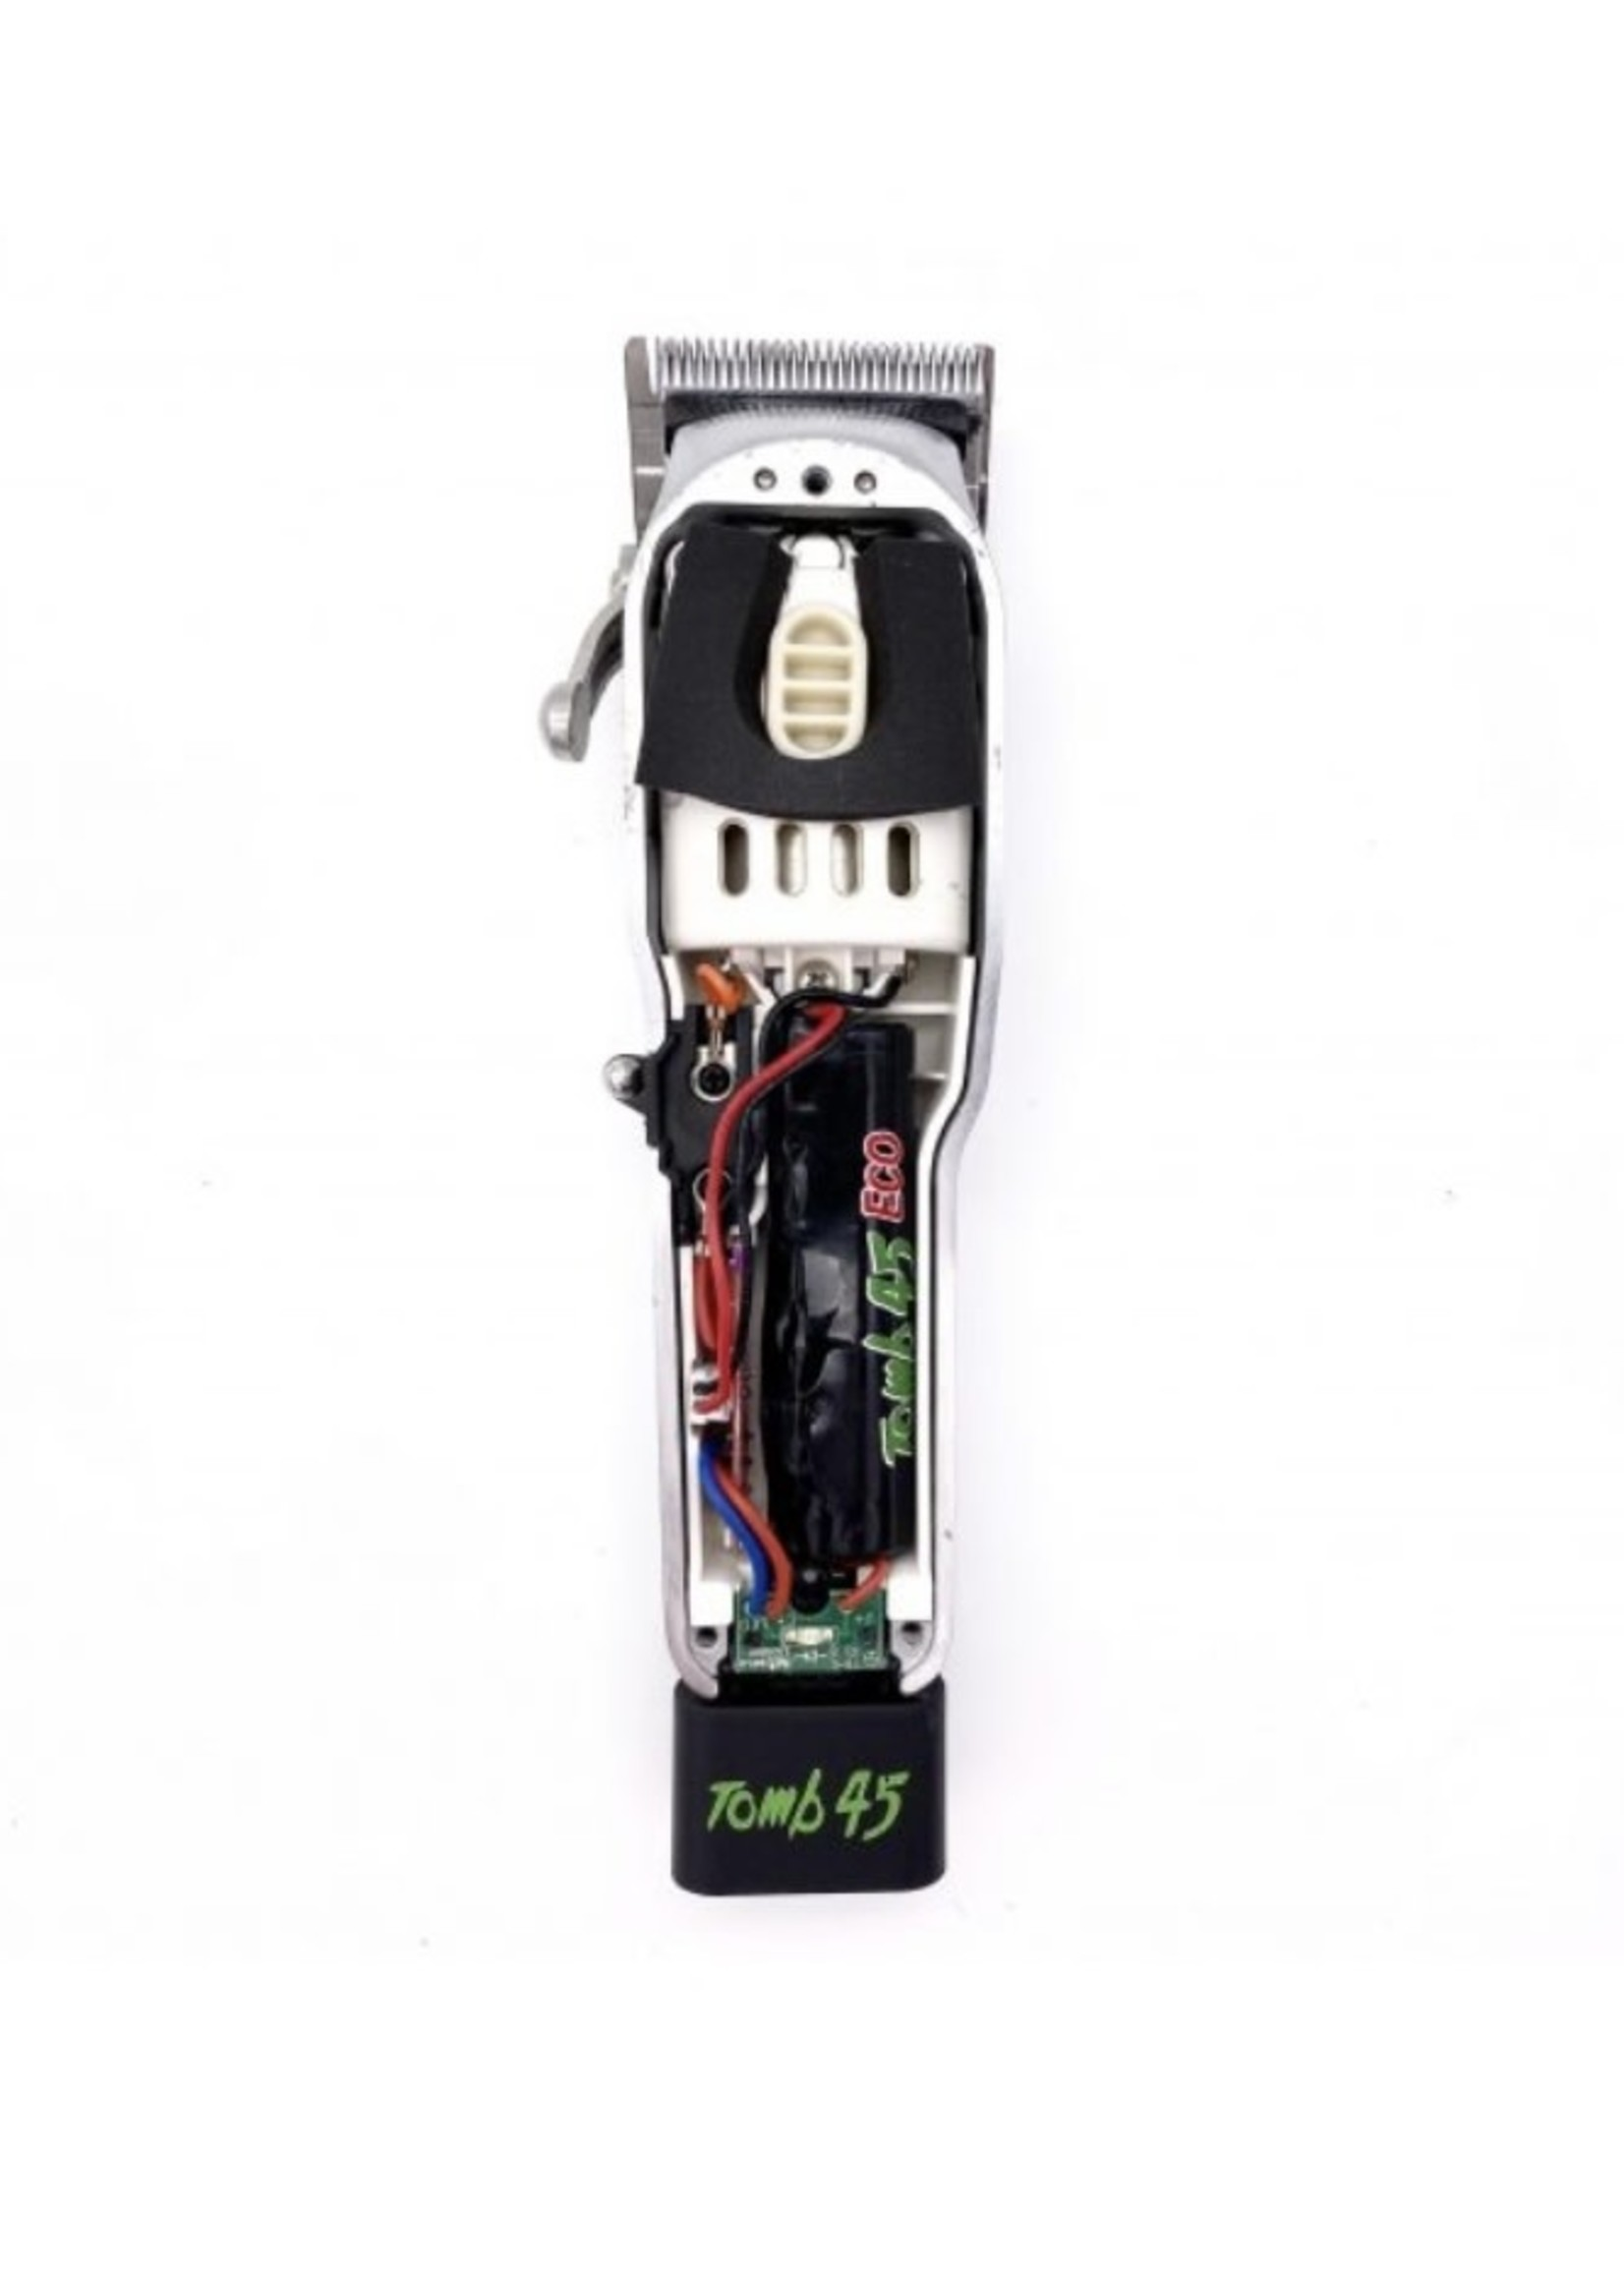 Tomb 45 Tomb45 Replacement Battery for Wahl Clippers